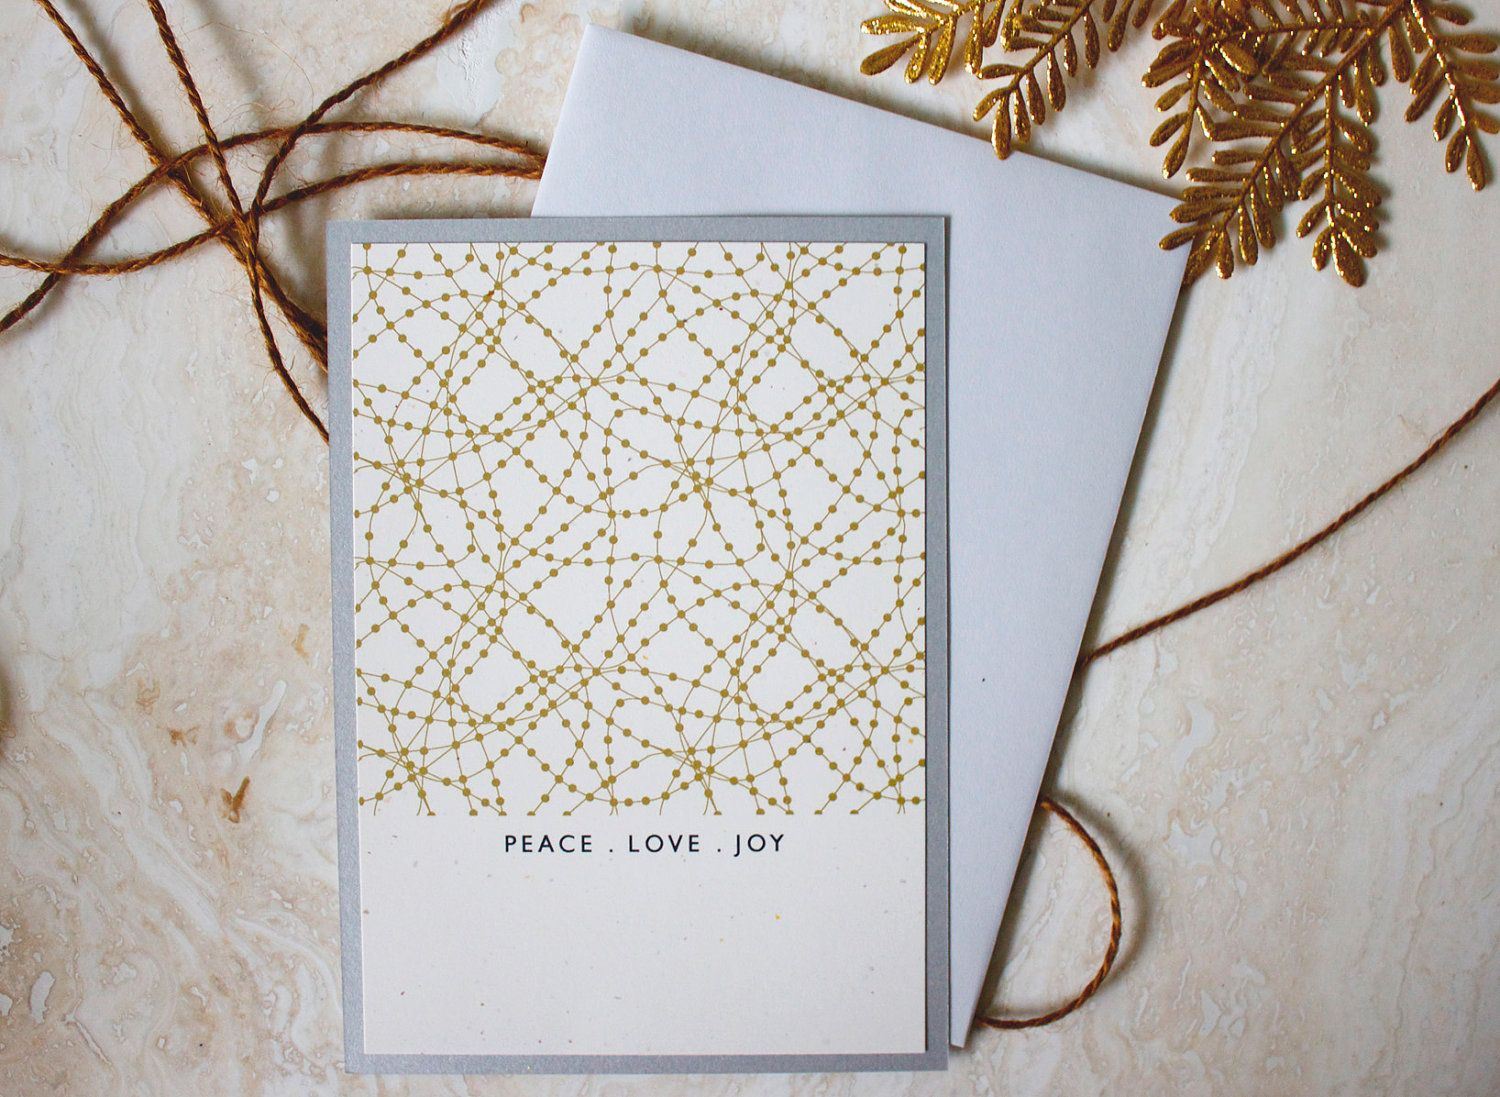 Modern Gold Dots Christmas Cards - Luxe with Metallic Backing Paper ...